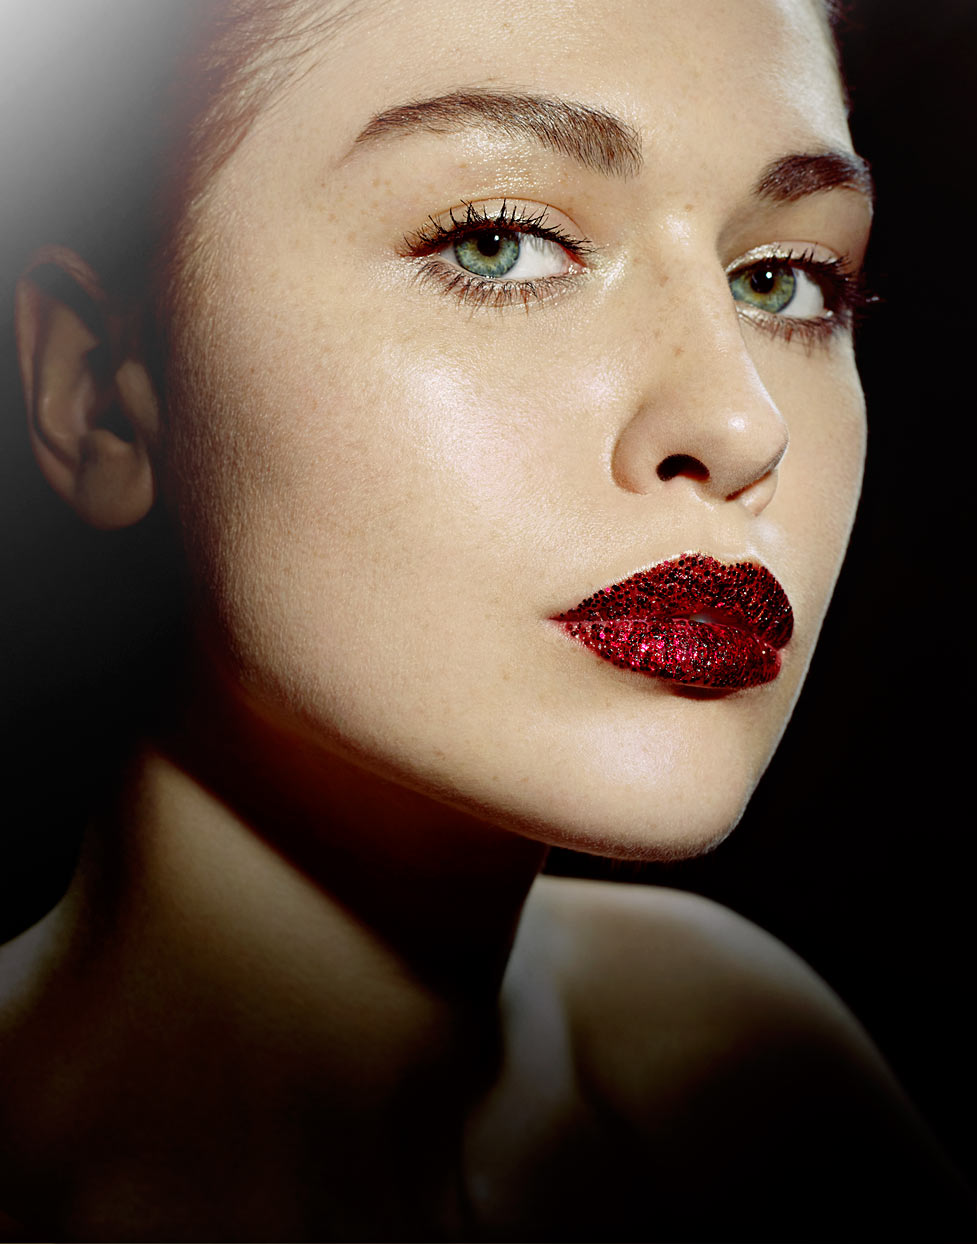 Mark DeLong - Beauty Photographer - Portrait of woman with deep red glitter lipstick and green eyes